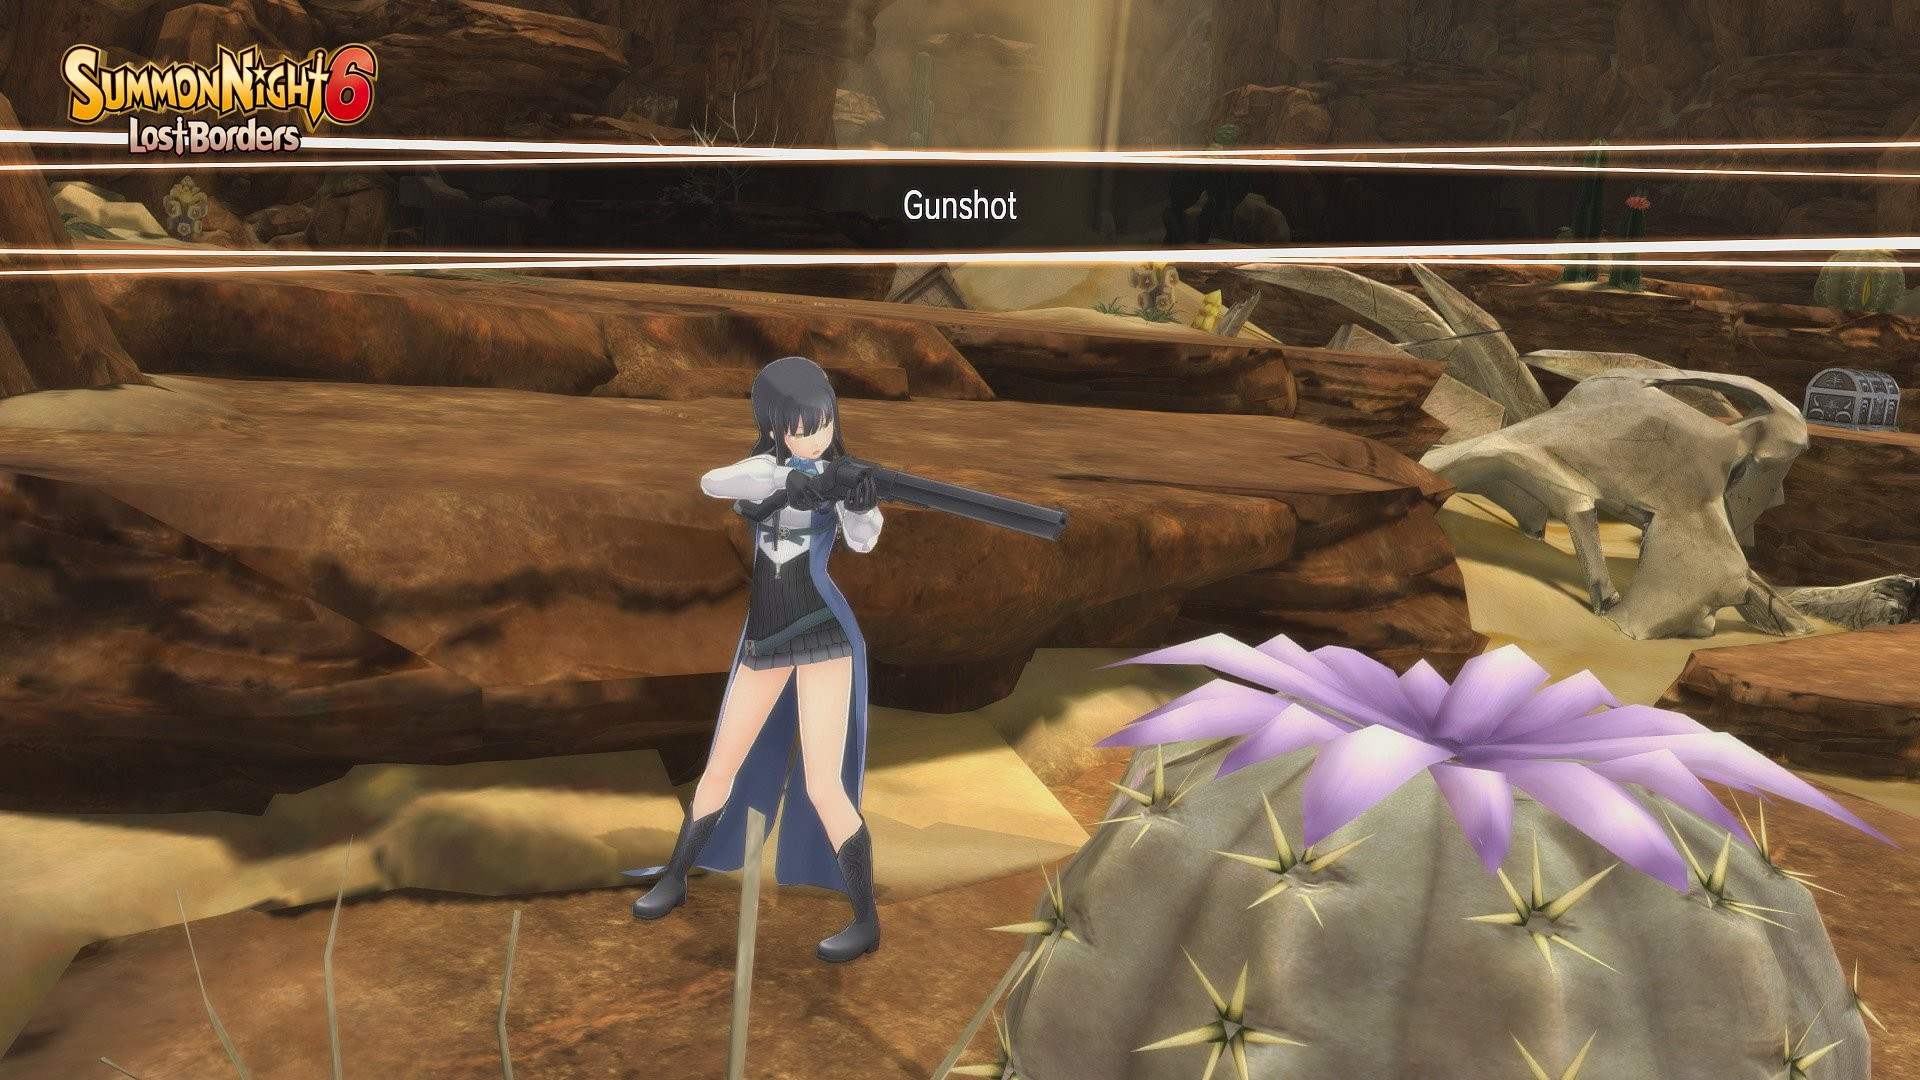 Foto de Summon Night 6: Lost Borders (2/34)